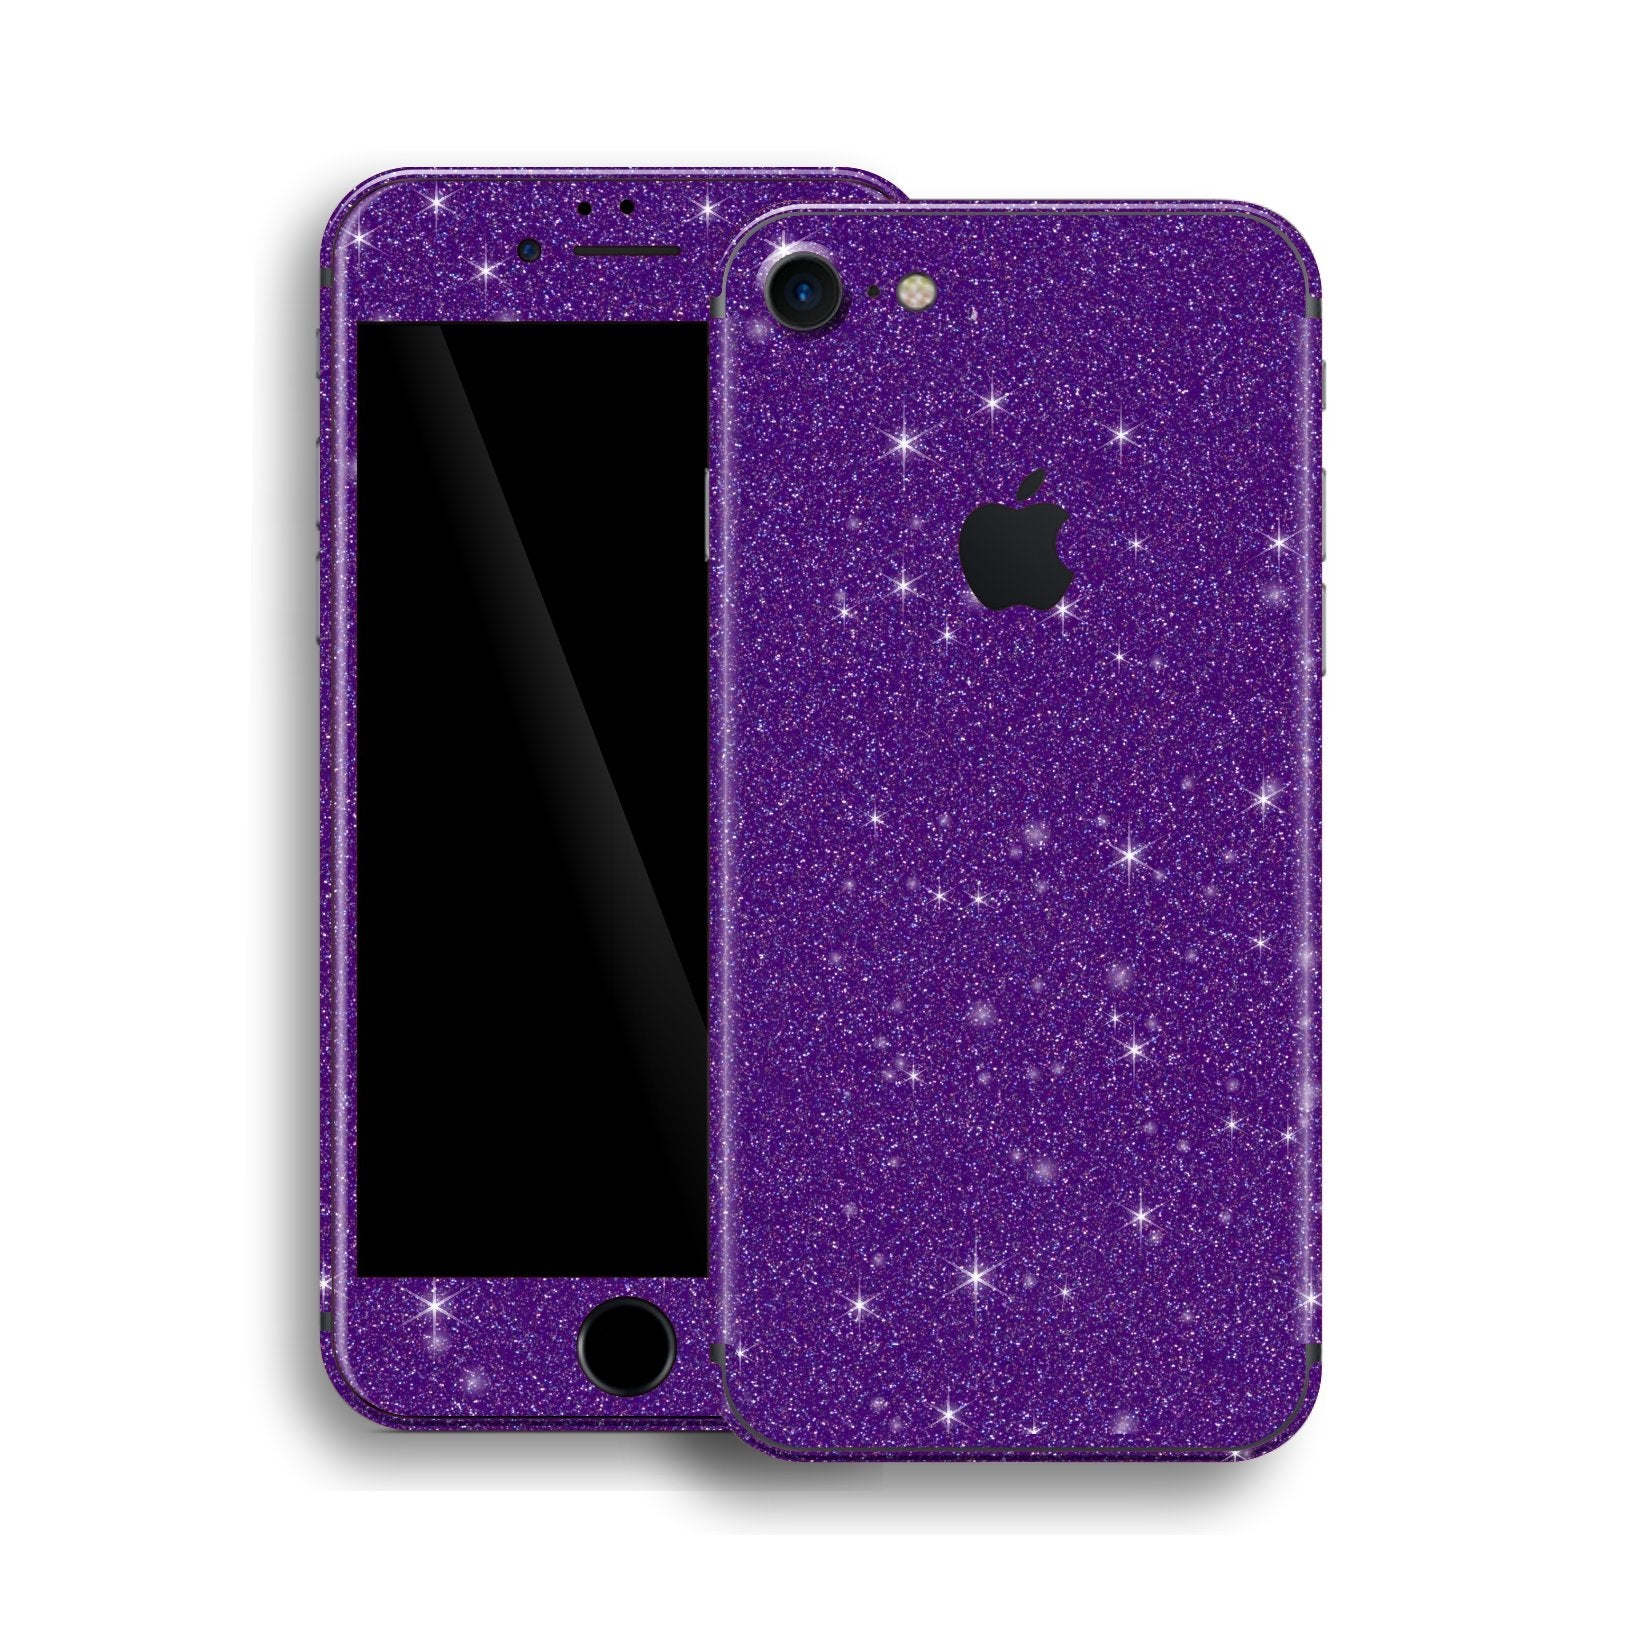 iPhone 8 Diamond PURPLE Shimmering, Sparkling, Glitter Skin, Wrap, Decal, Protector, Cover by EasySkinz | EasySkinz.com